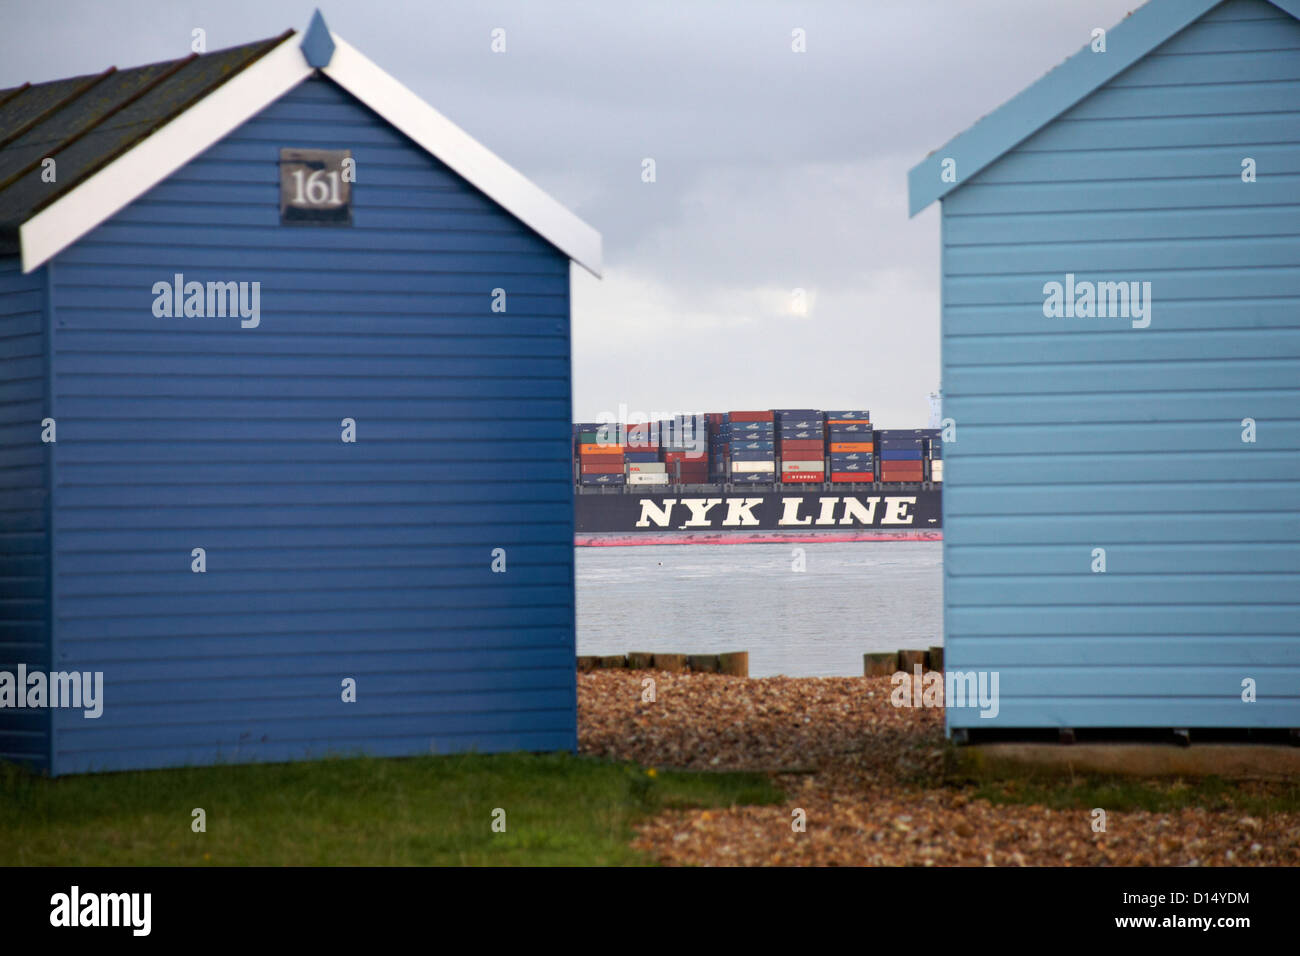 Container ship NYK Lines seen through gap between two beach huts at Calshot, Hampshire in November - Stock Image